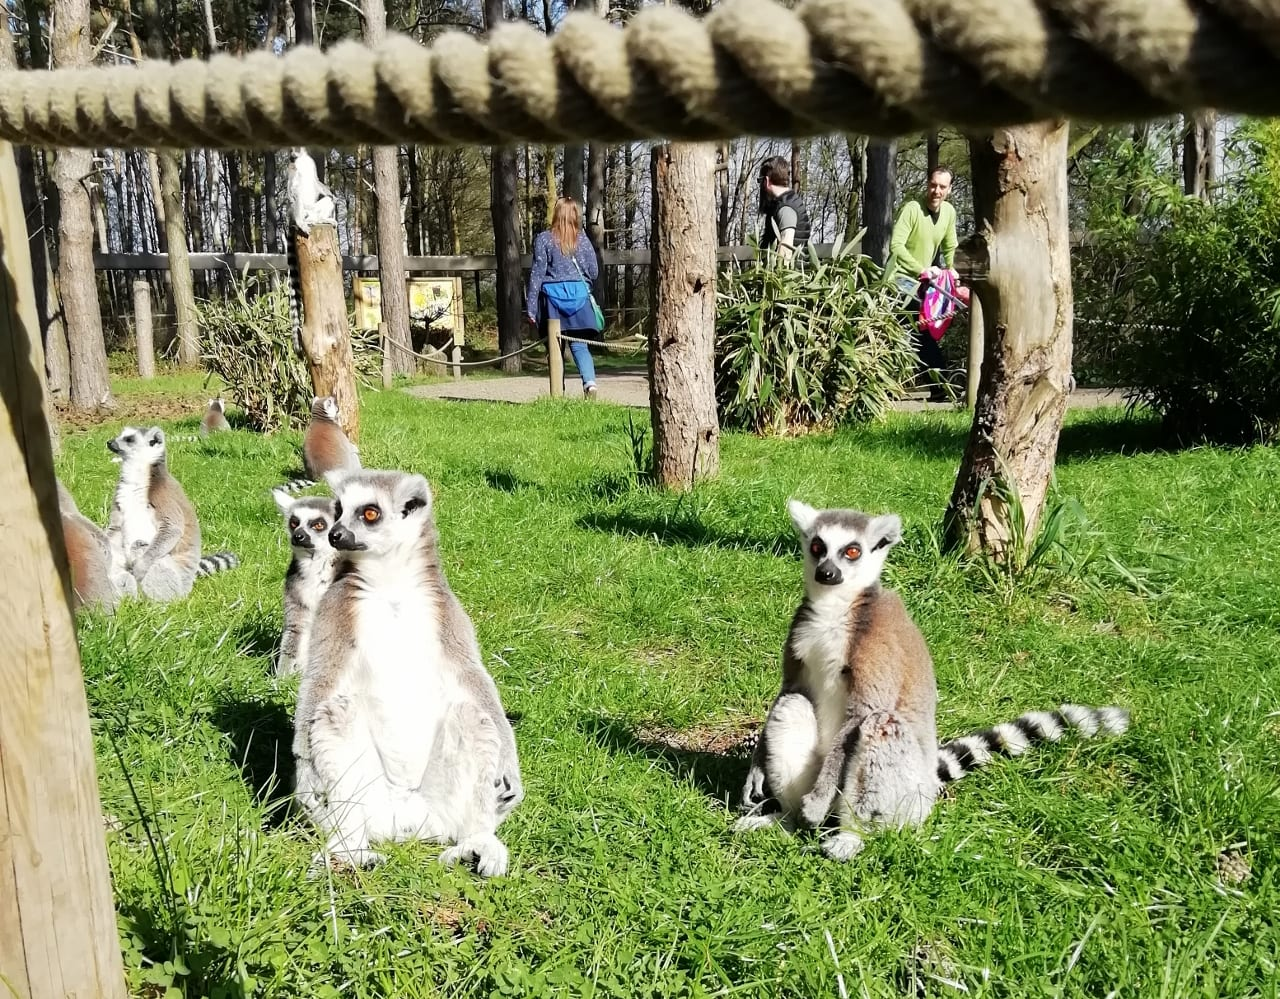 Up close with the animals at Yorkshire Wildlife Park